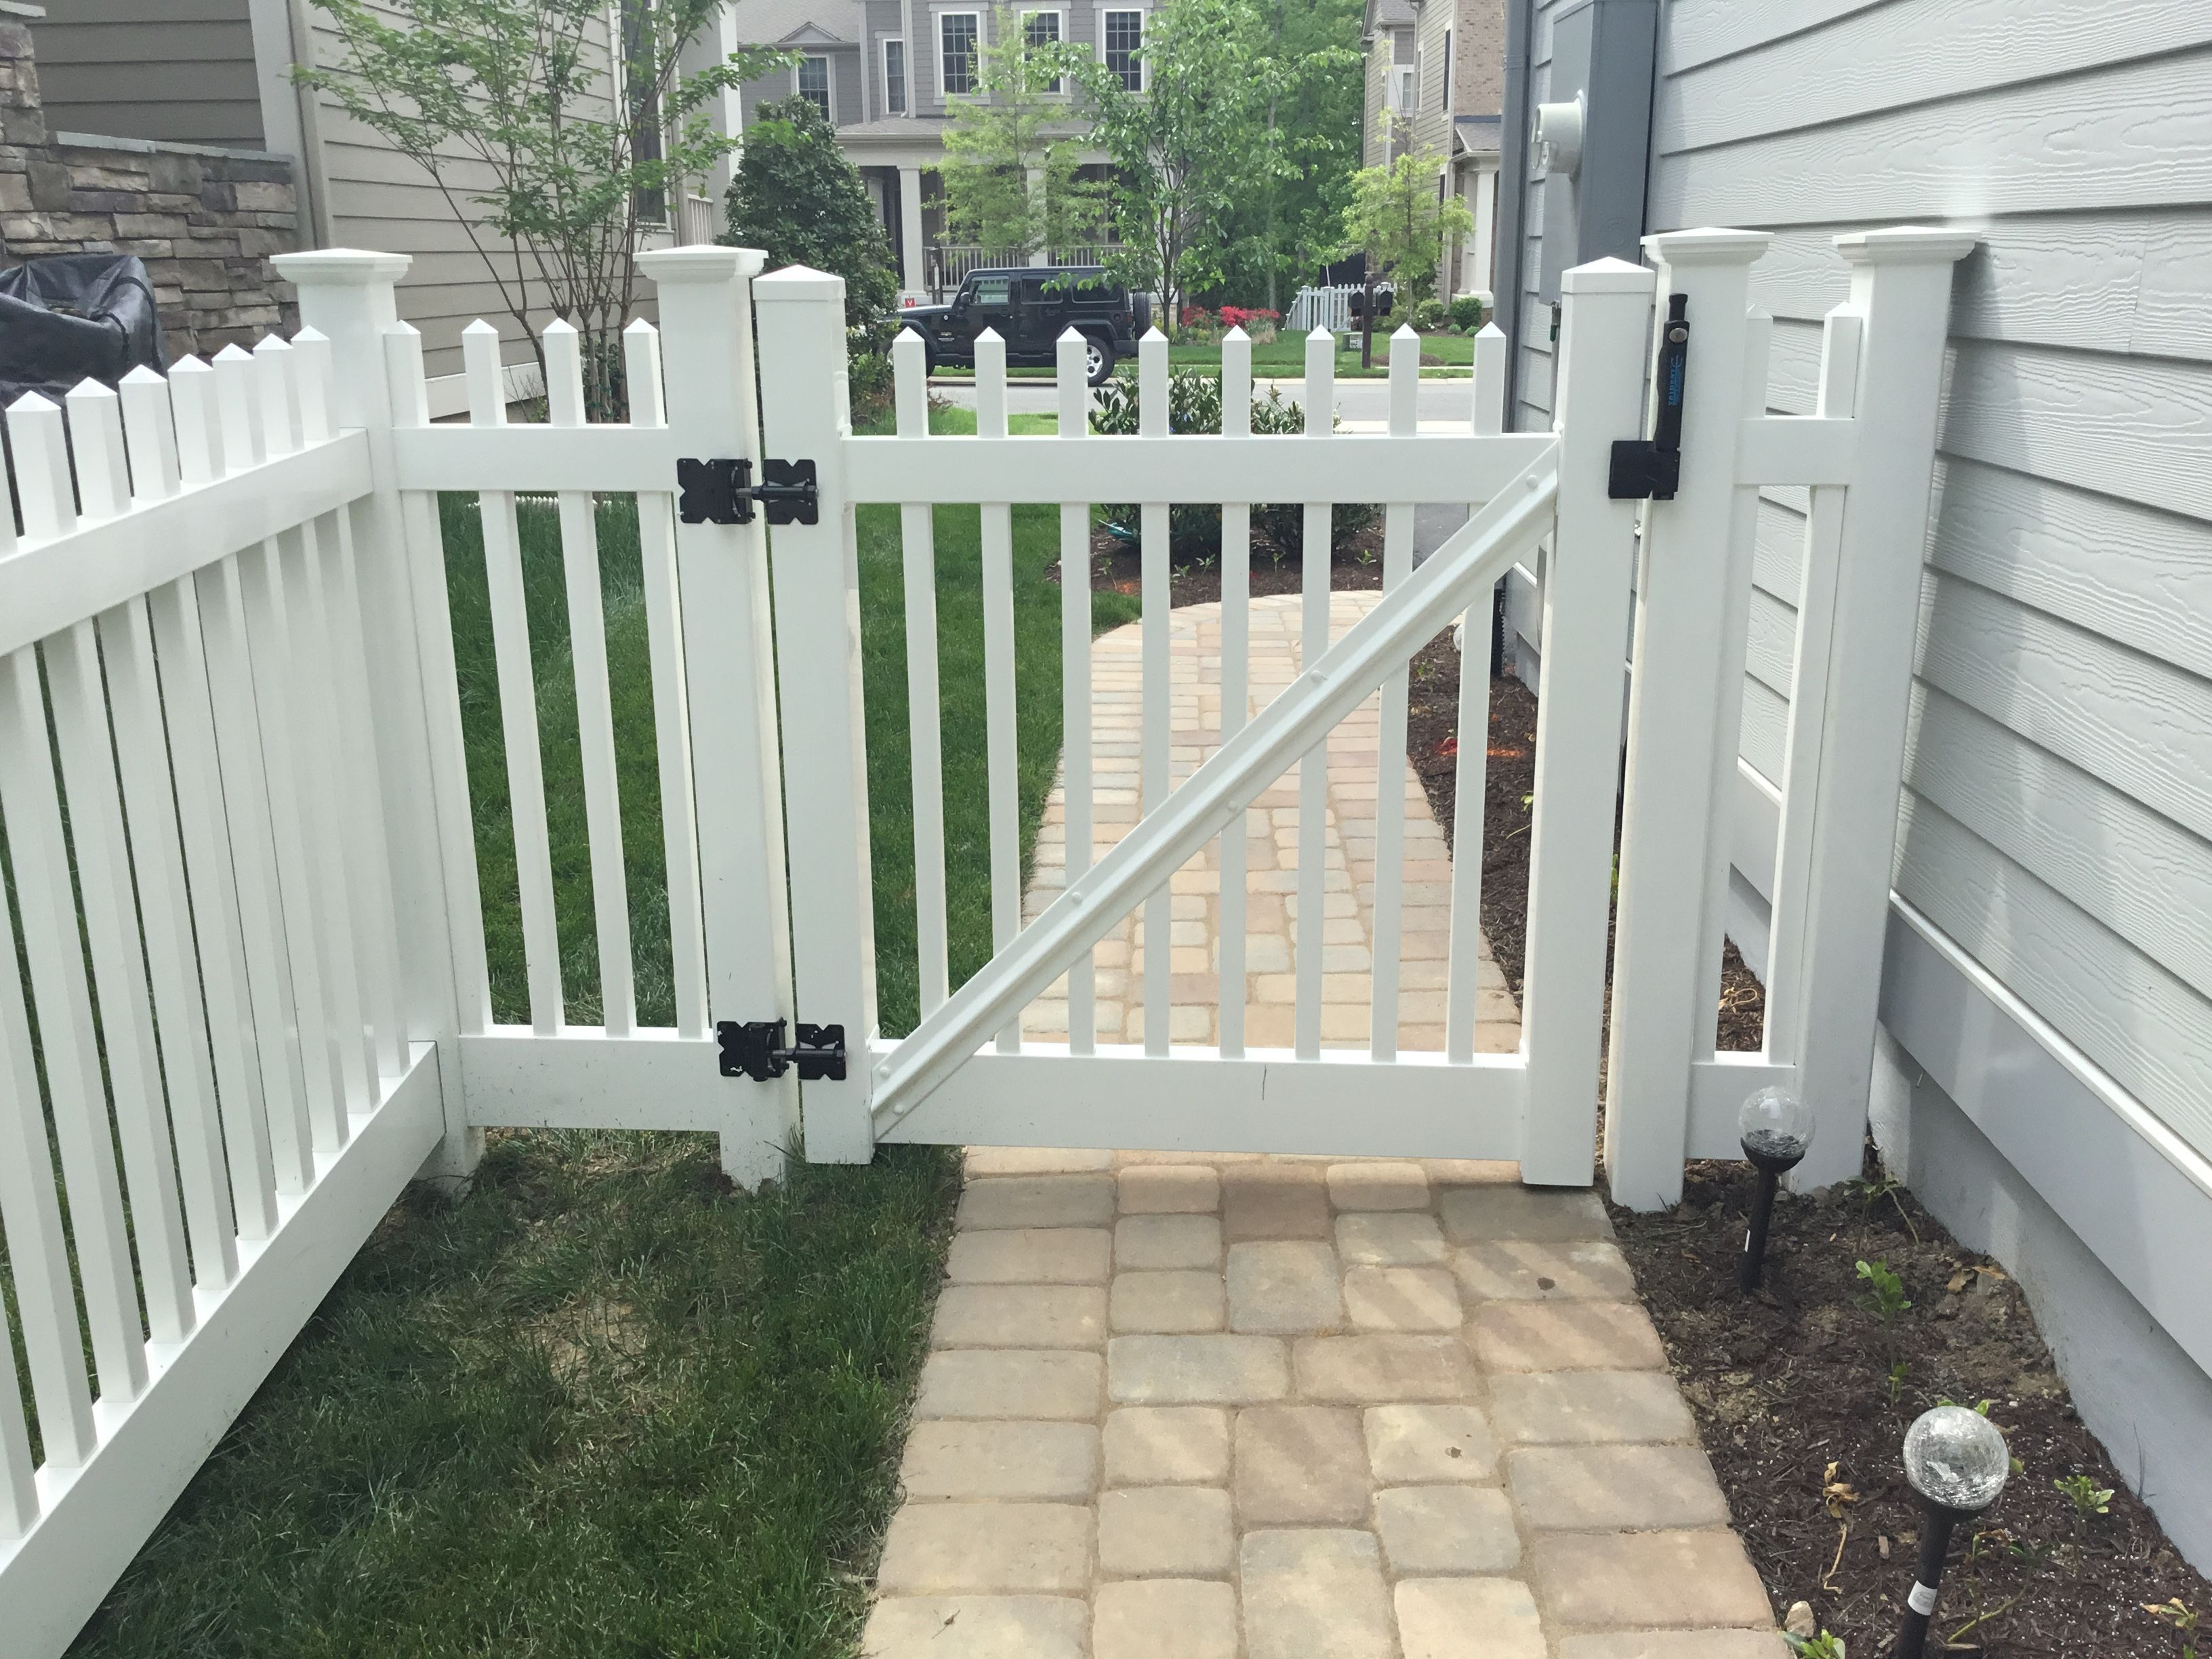 11 Rapturous Privacy Fence Vines Ideas In 2020 Fence Gate